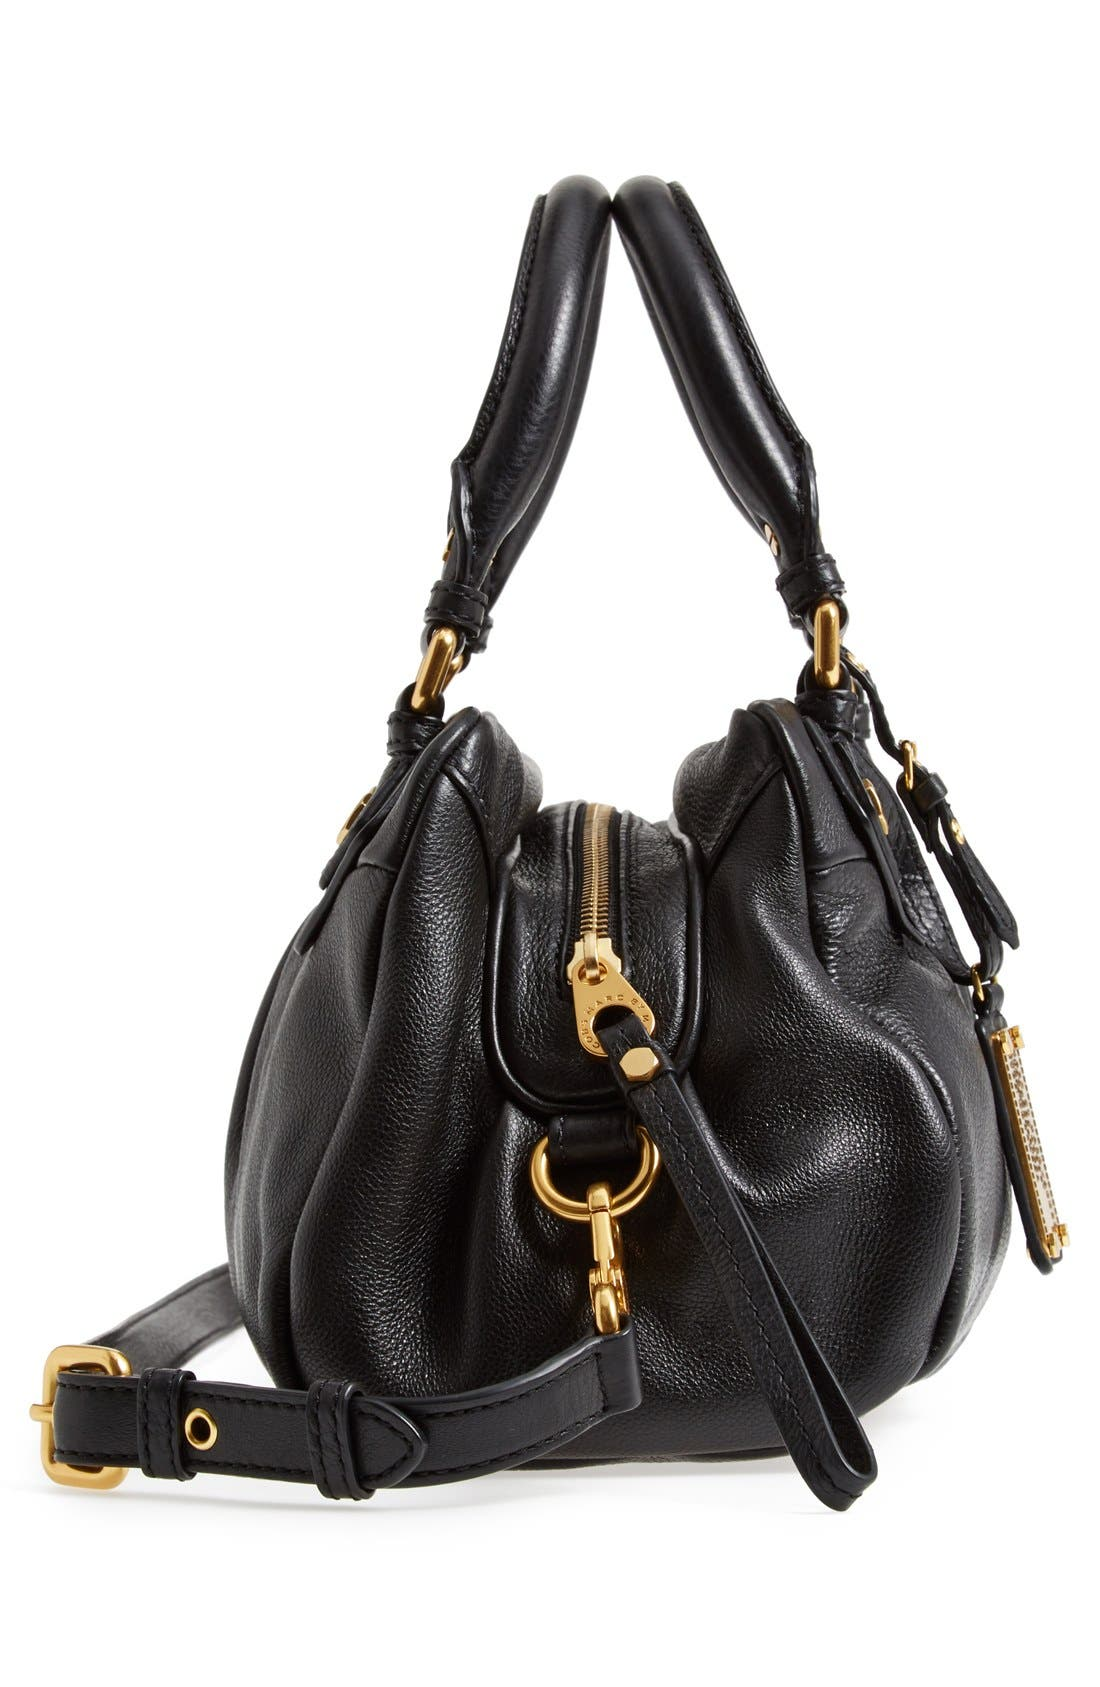 MARC BY MARC JACOBS 'Classic Q - Baby Groovee' Leather Satchel,                             Alternate thumbnail 6, color,                             002